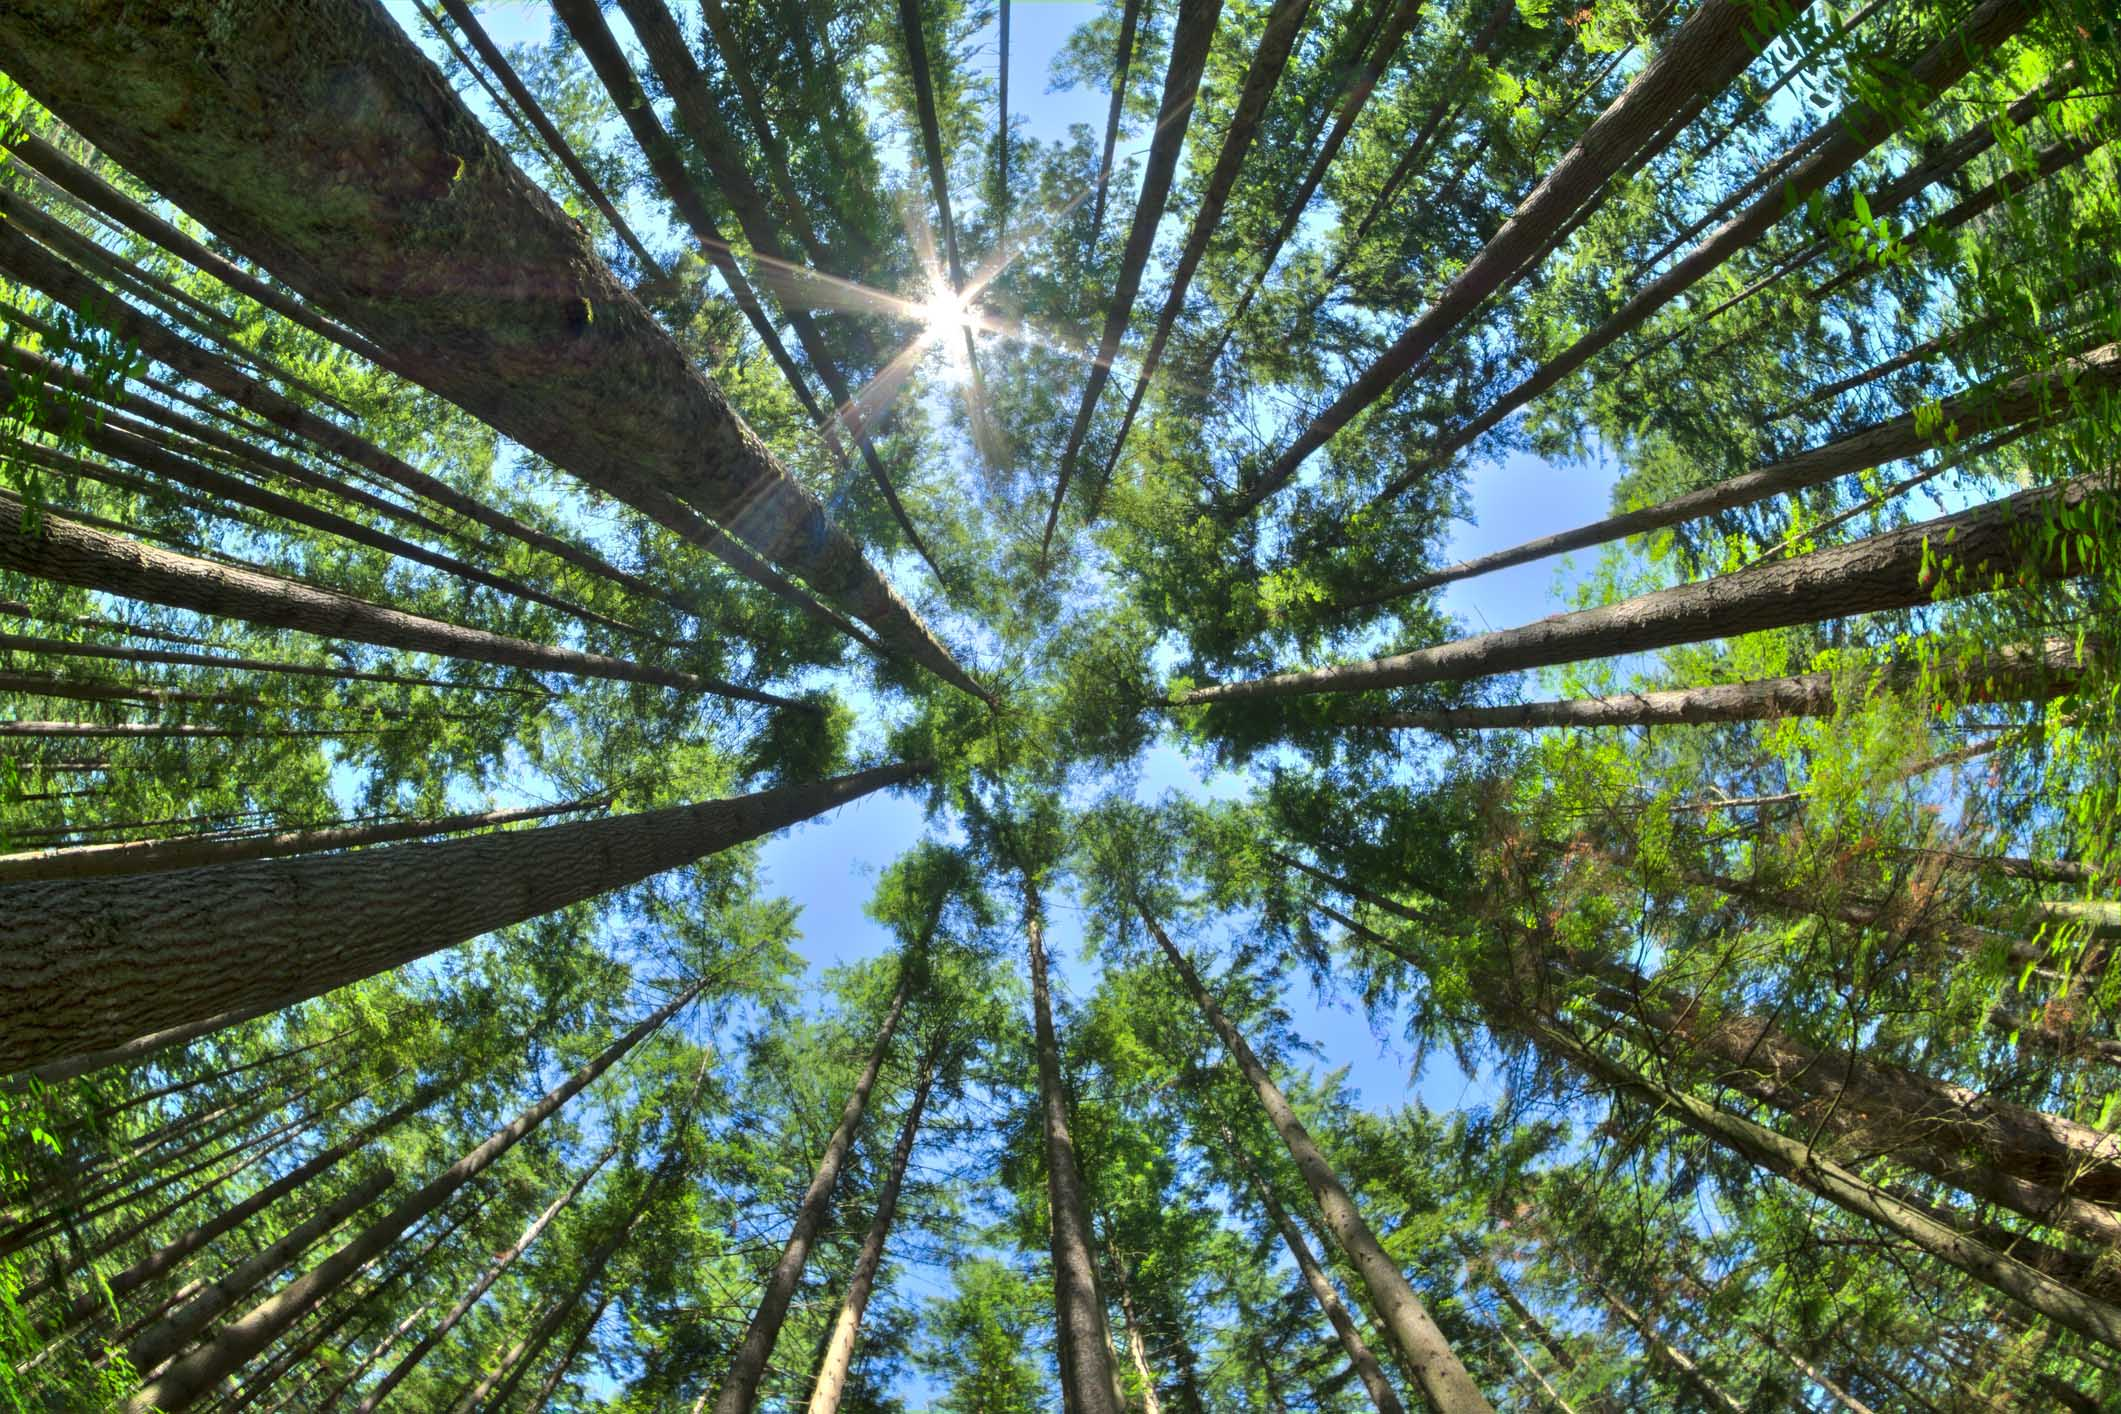 Fisheye HDR view looking directly up in dense Canadian pine forest with sun glaring in clear blue sky as trees reach for the sky